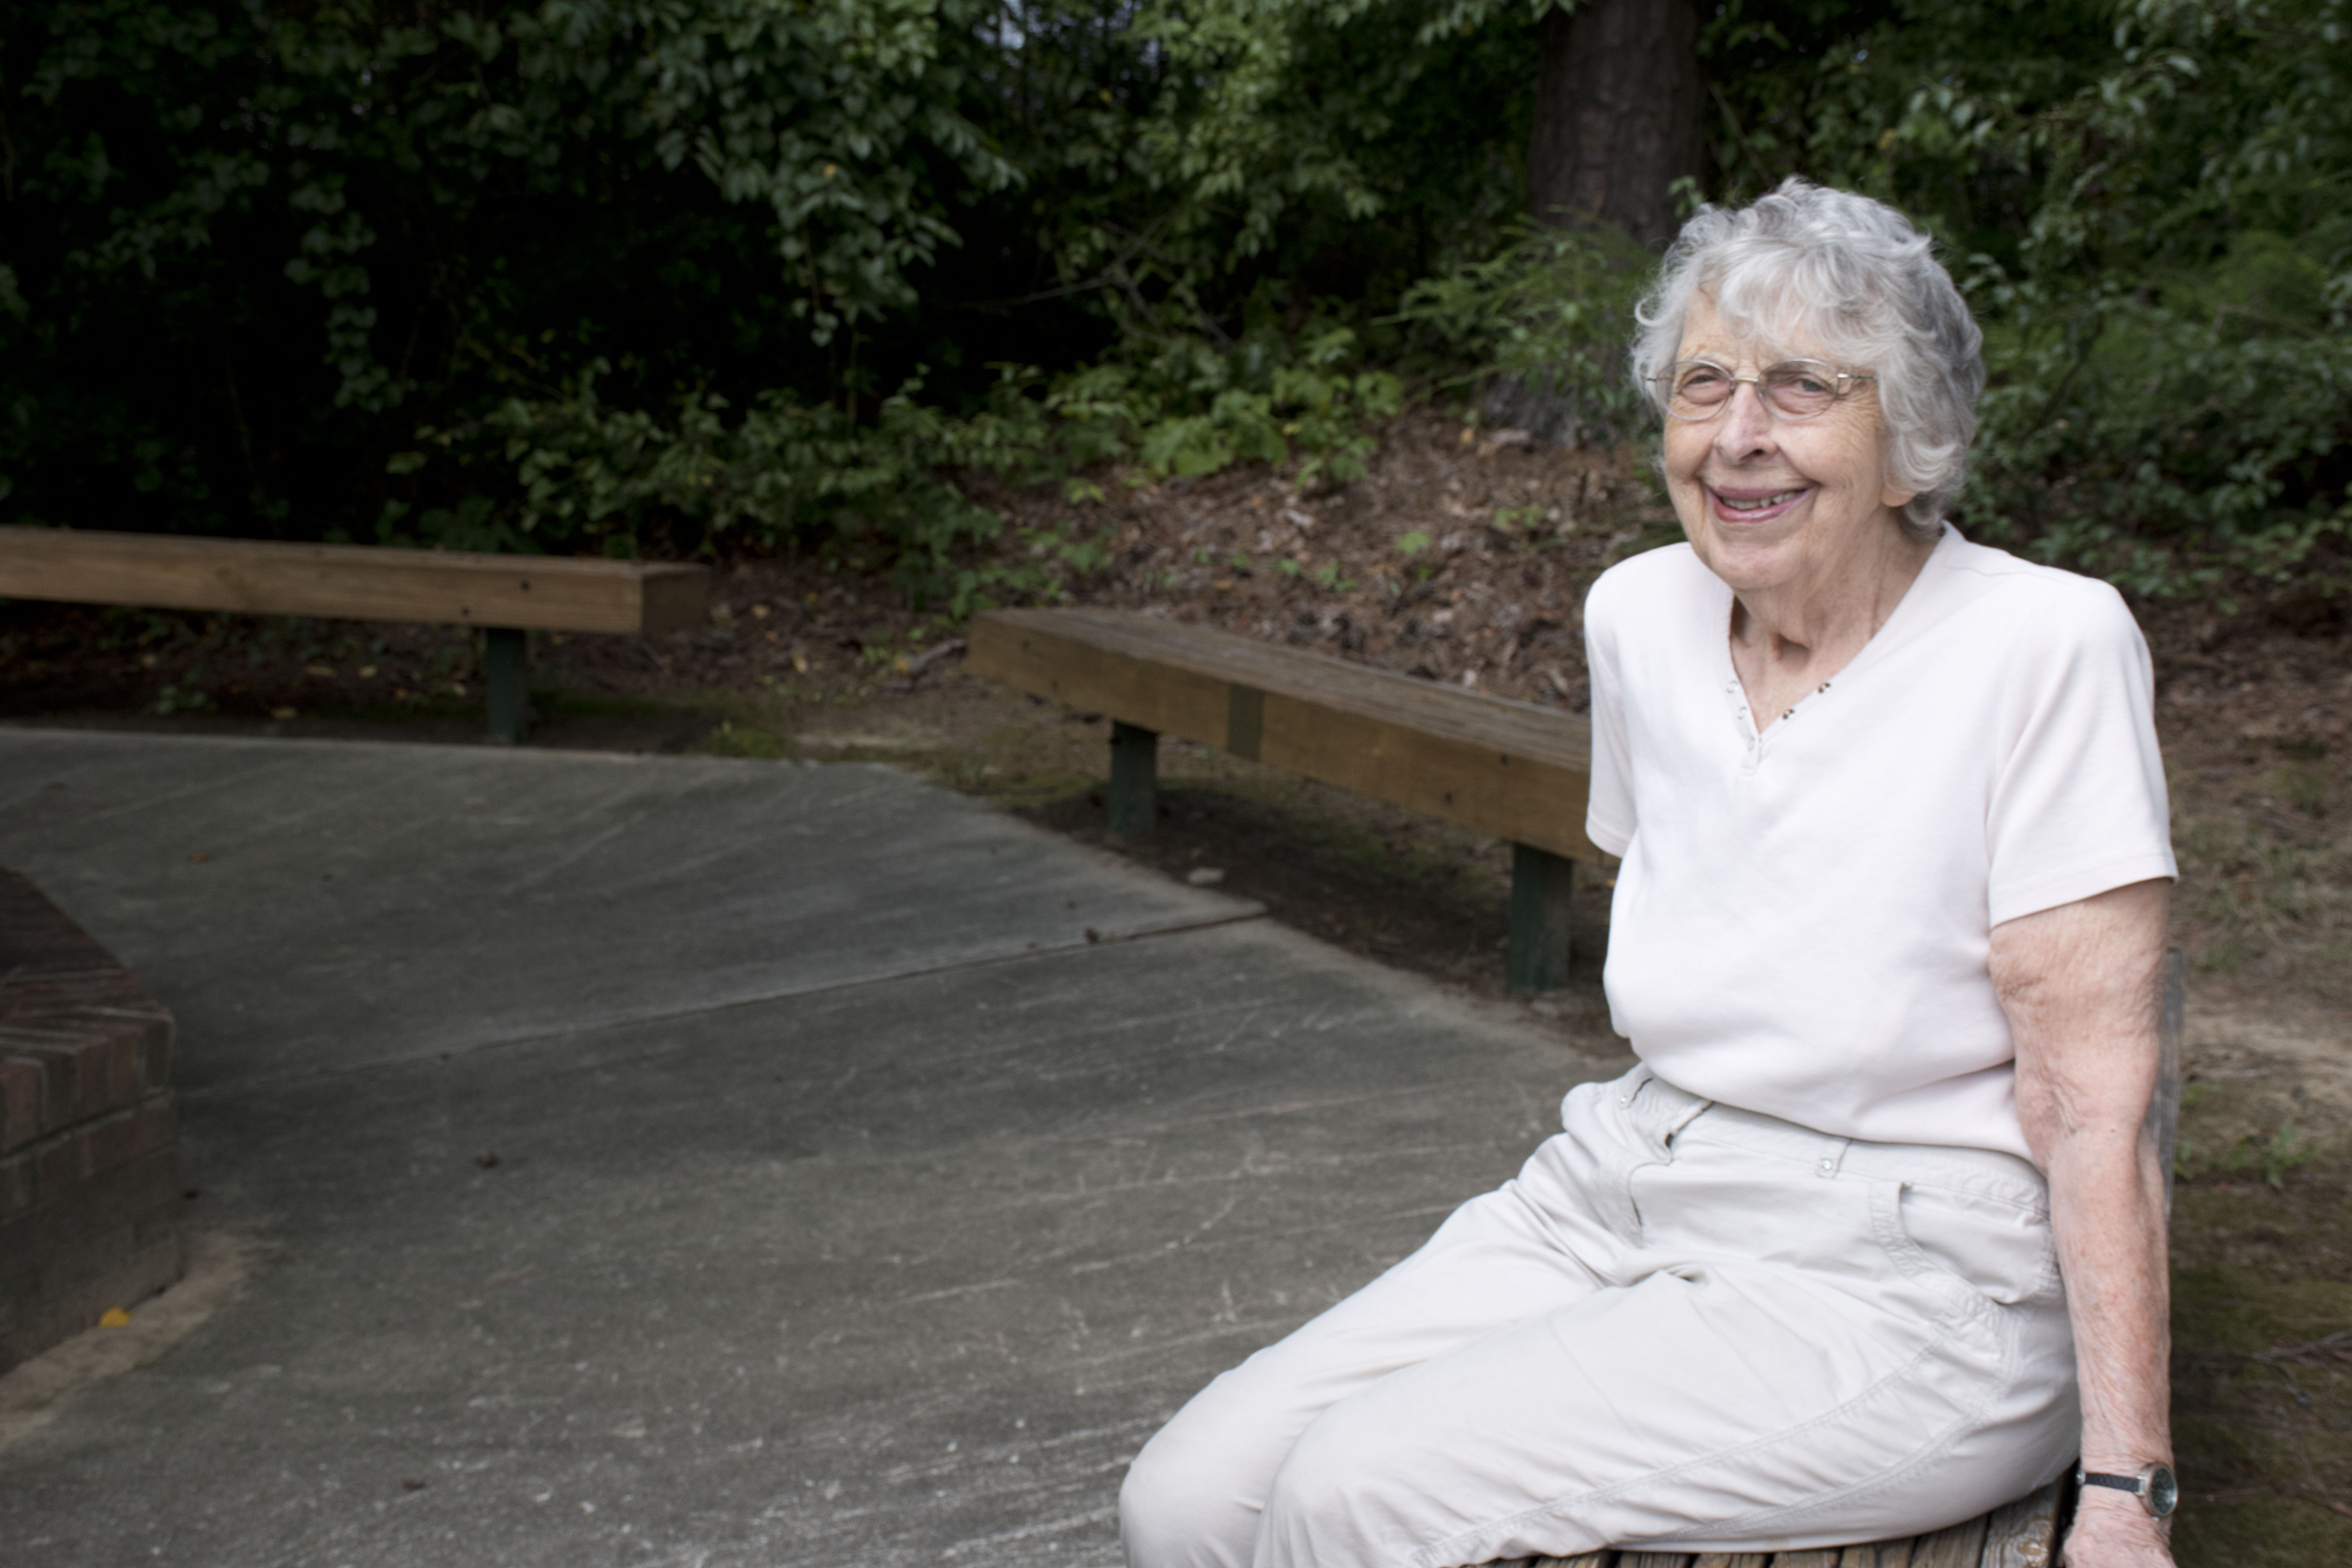 Older woman sitting outdoors